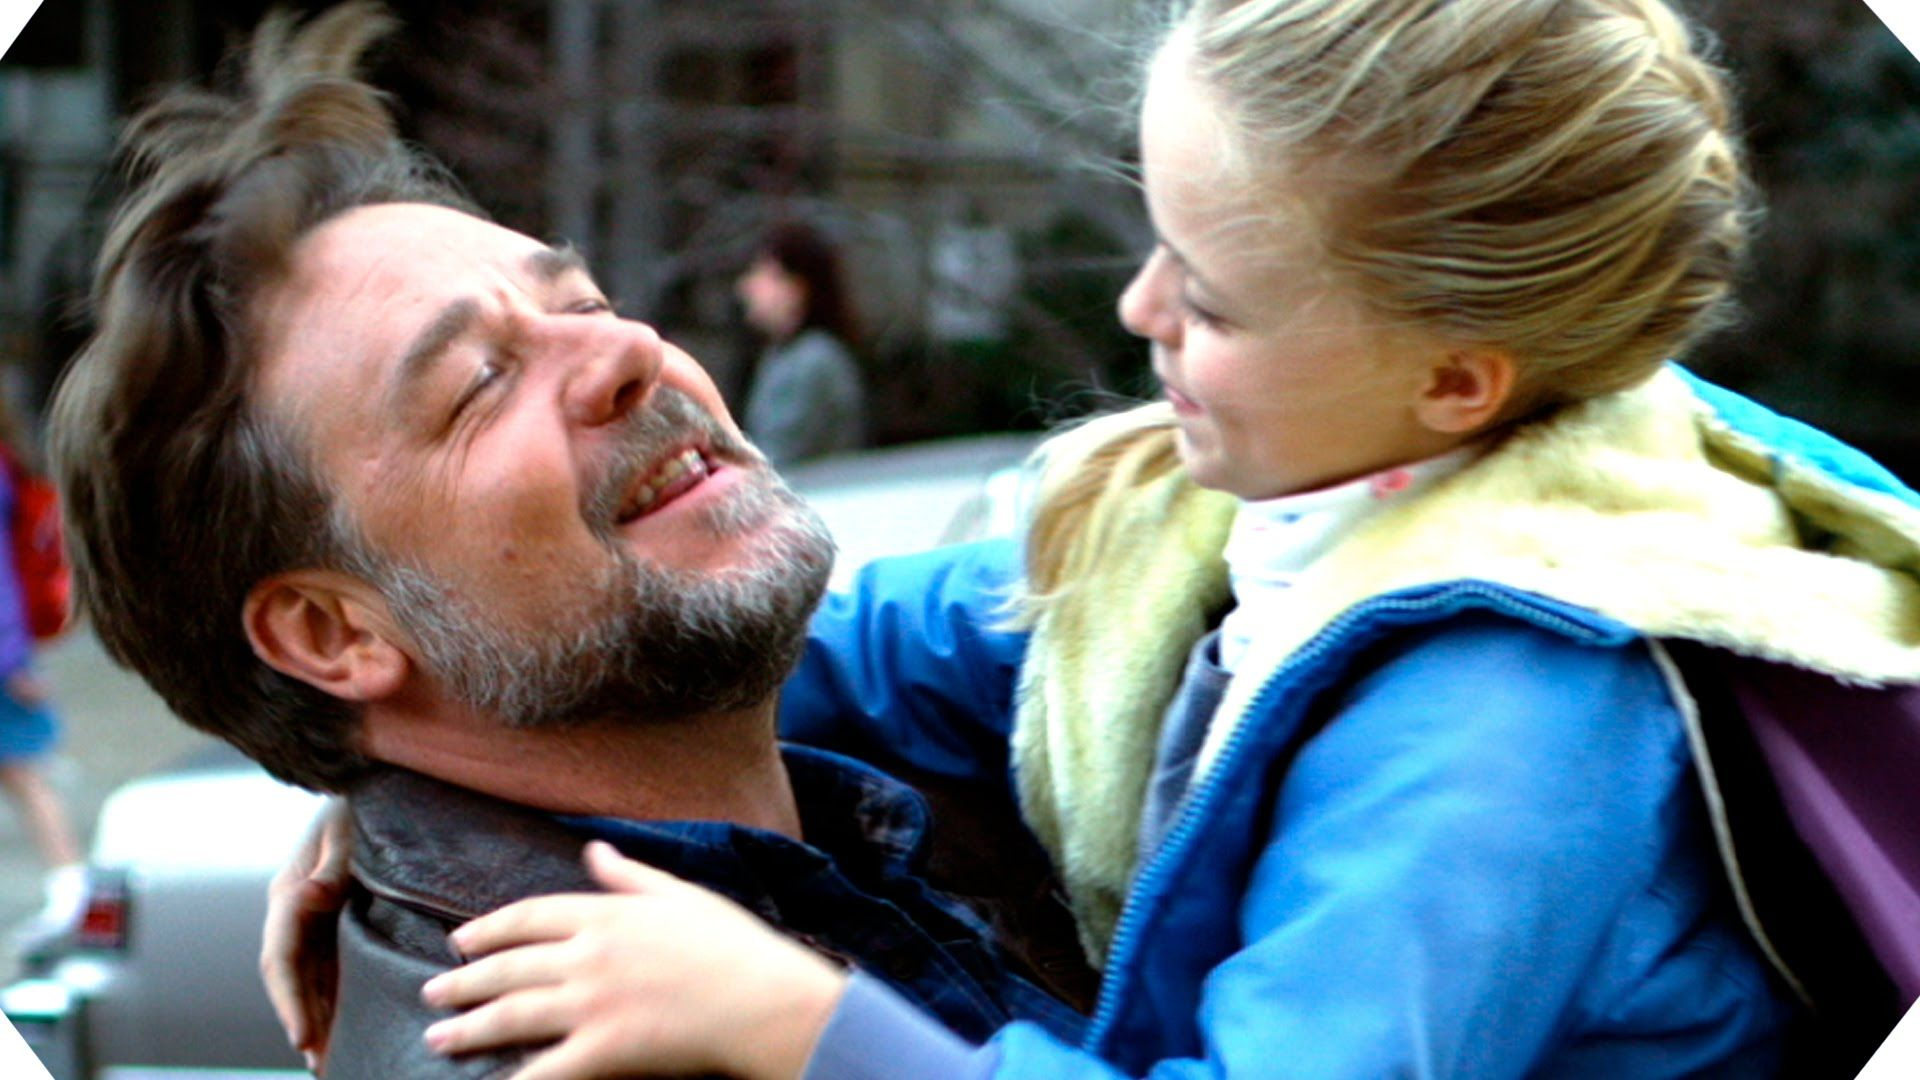 FATHERS AND DAUGHTERS Movie Clip & Trailer https//www